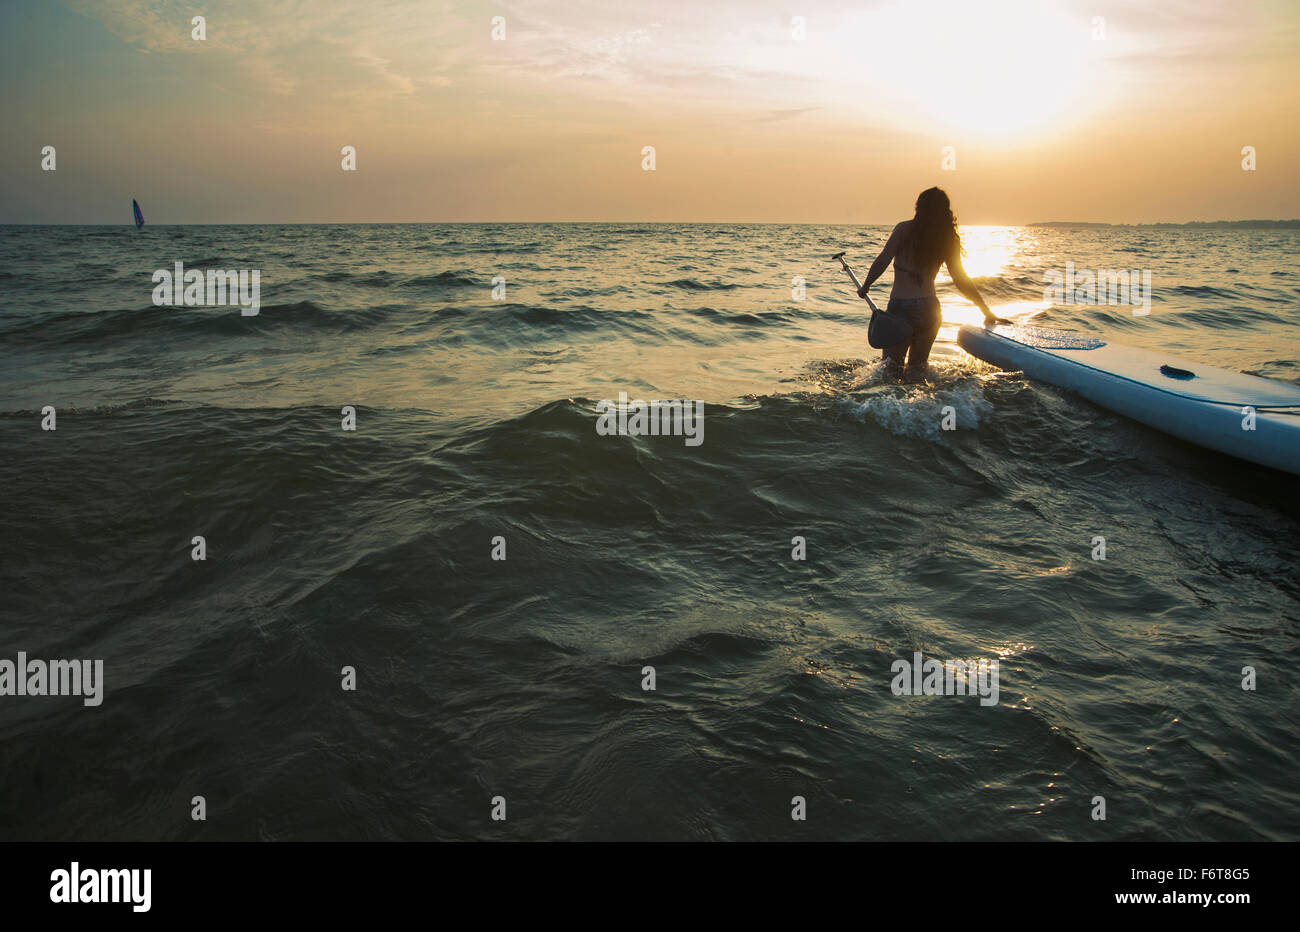 Woman pulling paddleboard dans le lac Photo Stock